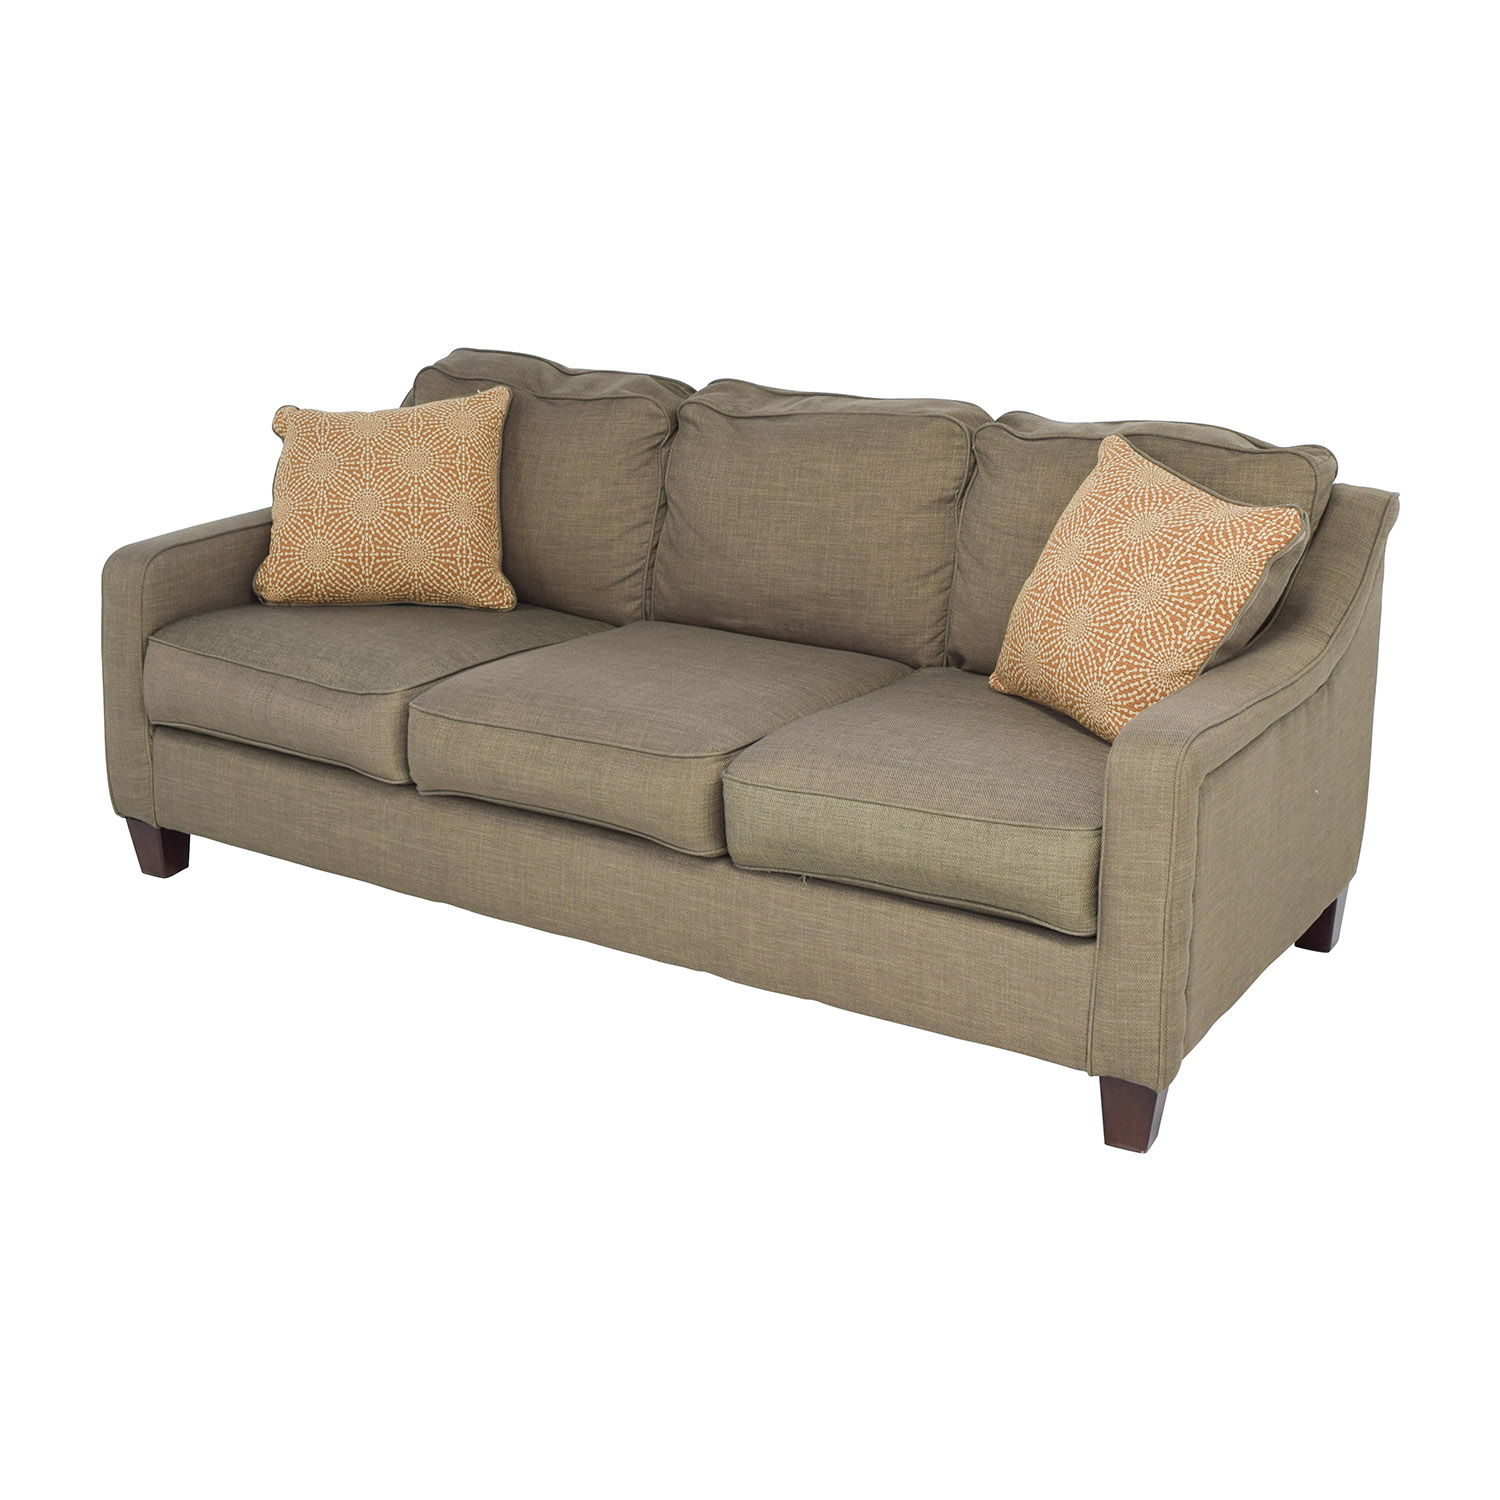 69 Off Ashley Furniture Ashley Furniture Brown Couch Sofas